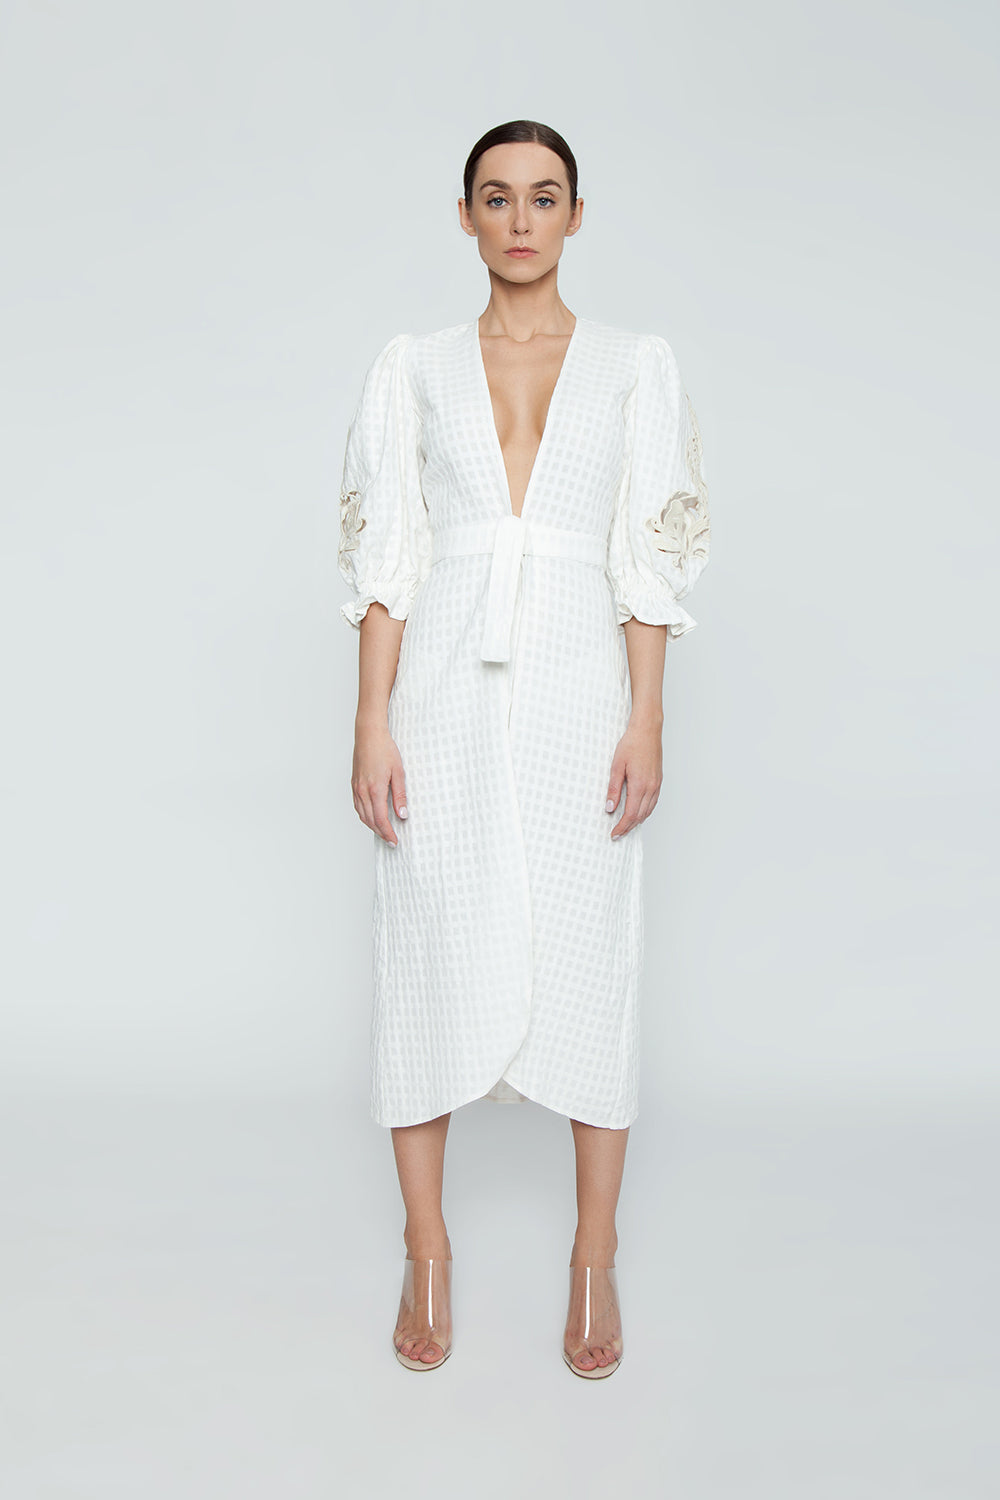 c5467b0ec593a ... ADRIANA DEGREAS Cotton Embroidery Long Robe Cover-Up - Off White -  undefined undefined